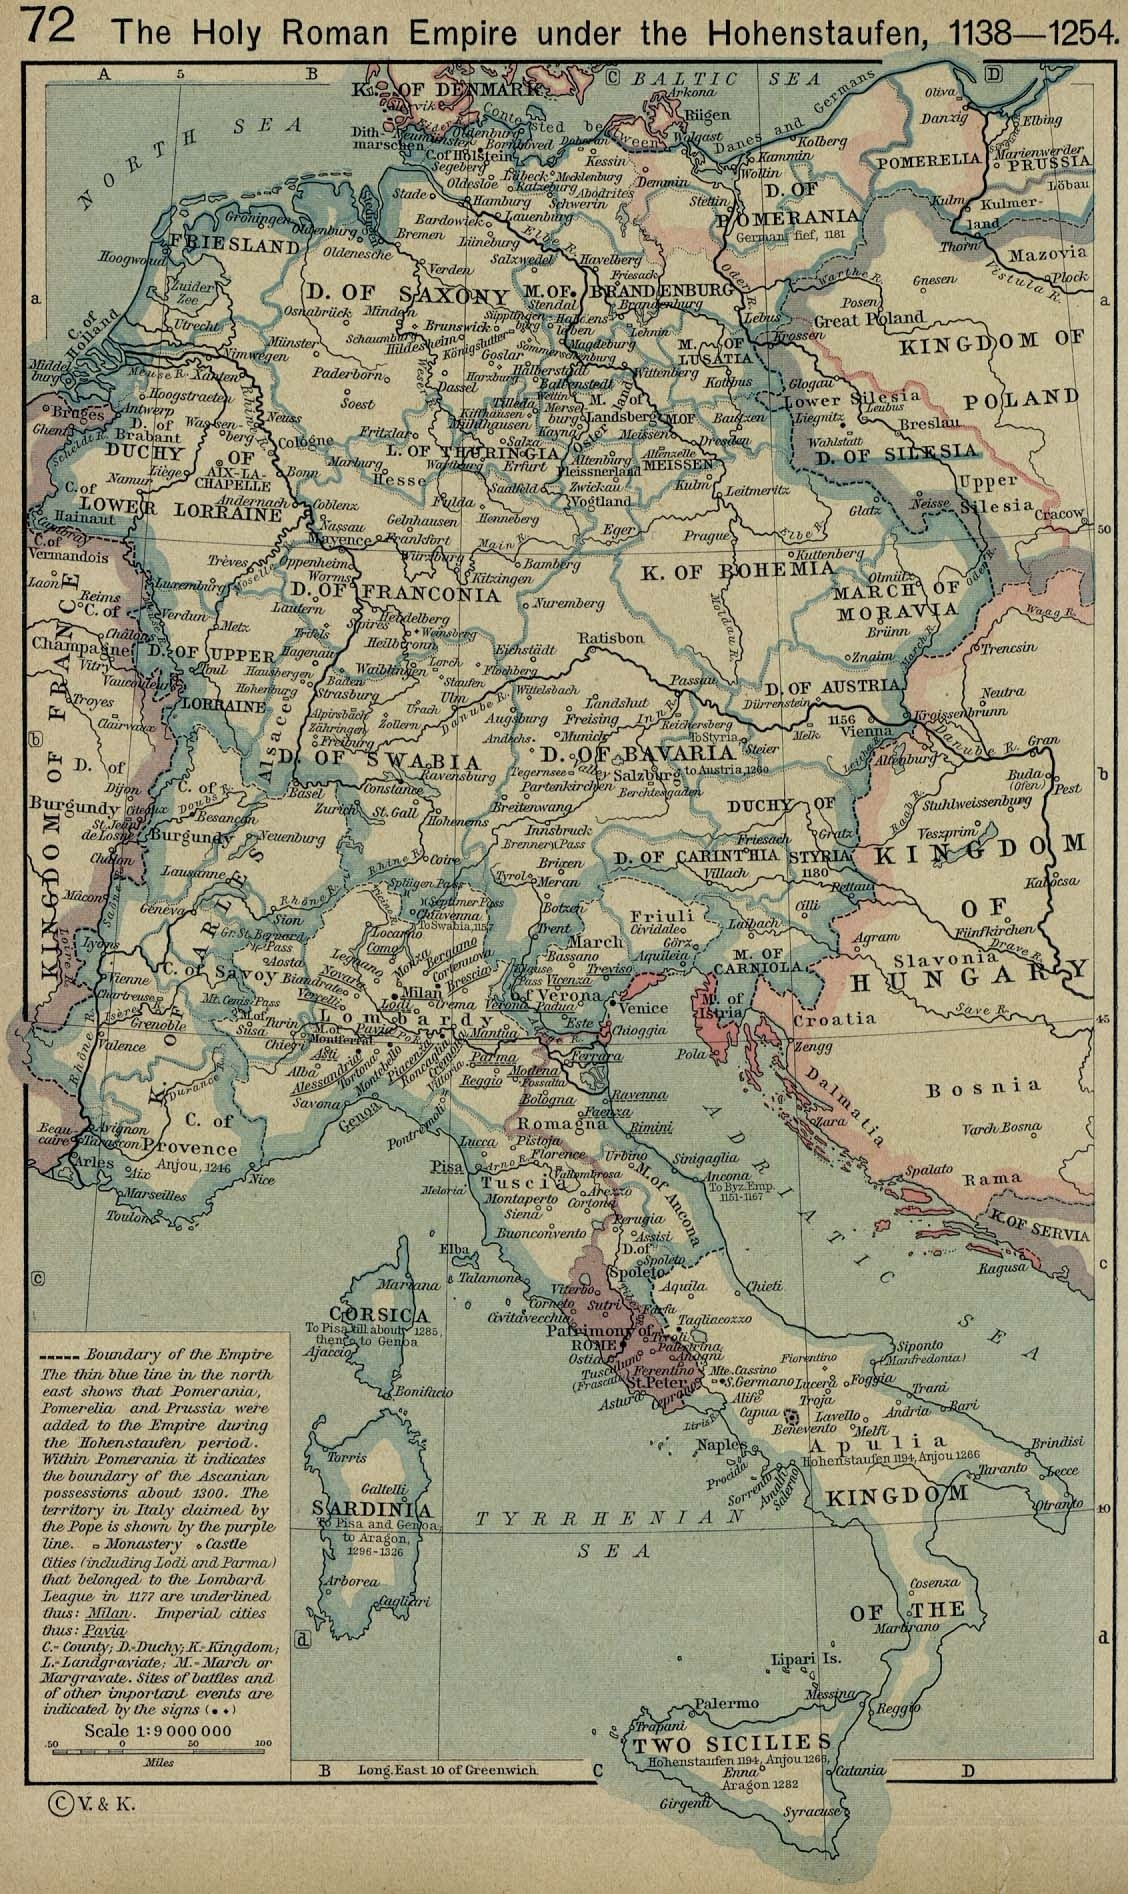 The Holy Roman Empire 1138-1254 - Full Size | Gifex pertaining to Old World Map Of Germany